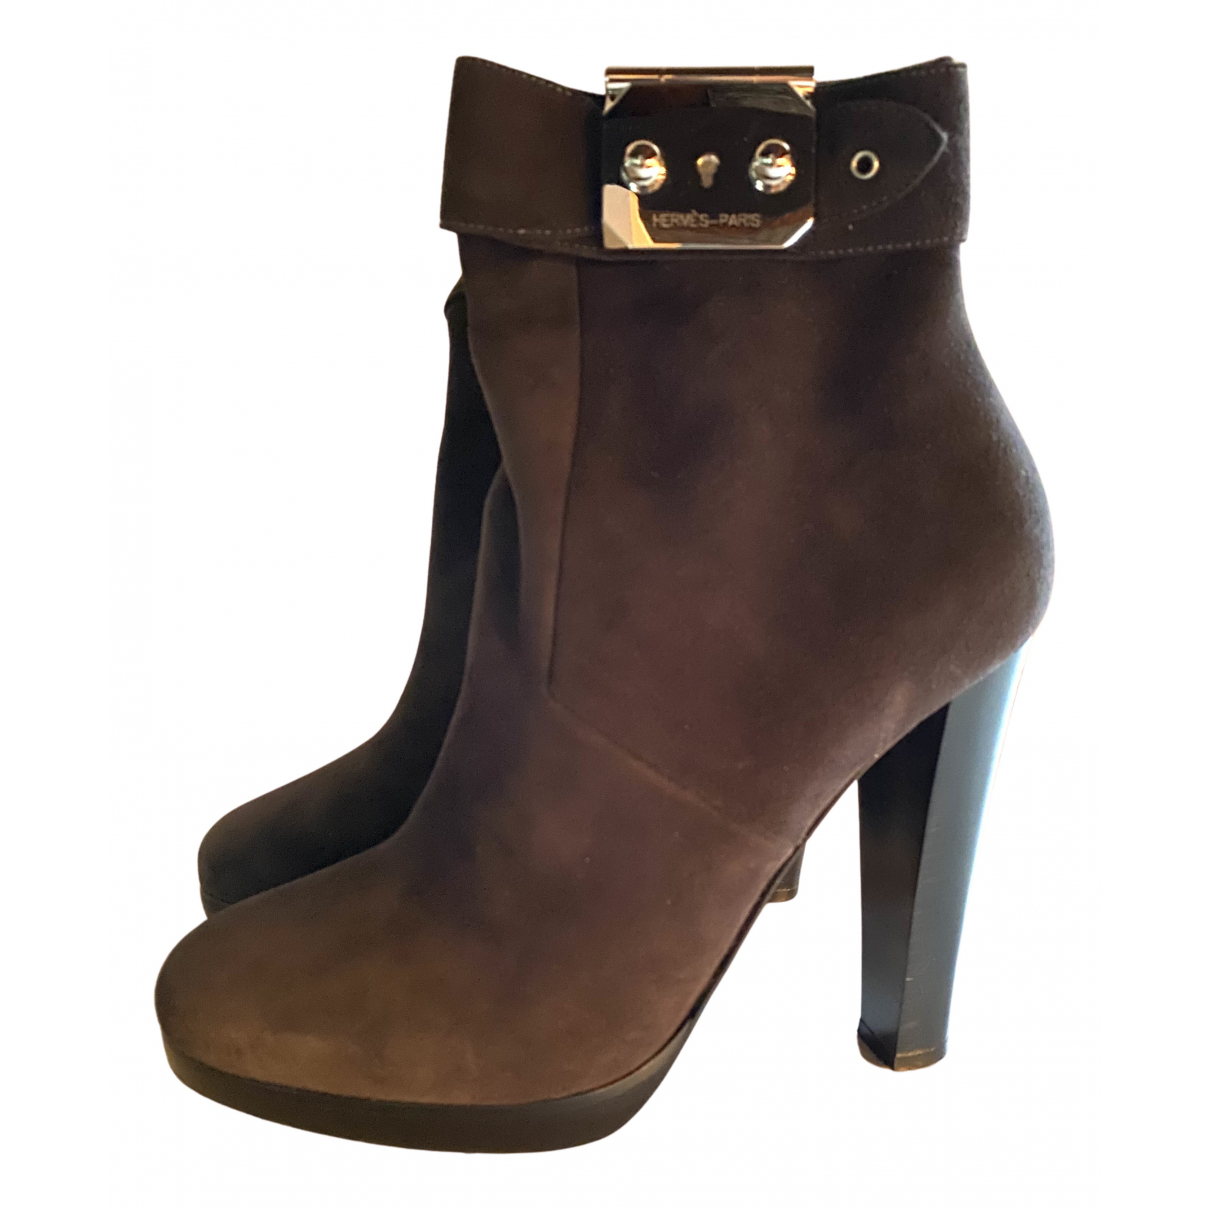 Hermès N Grey Suede Ankle boots for Women 39 EU